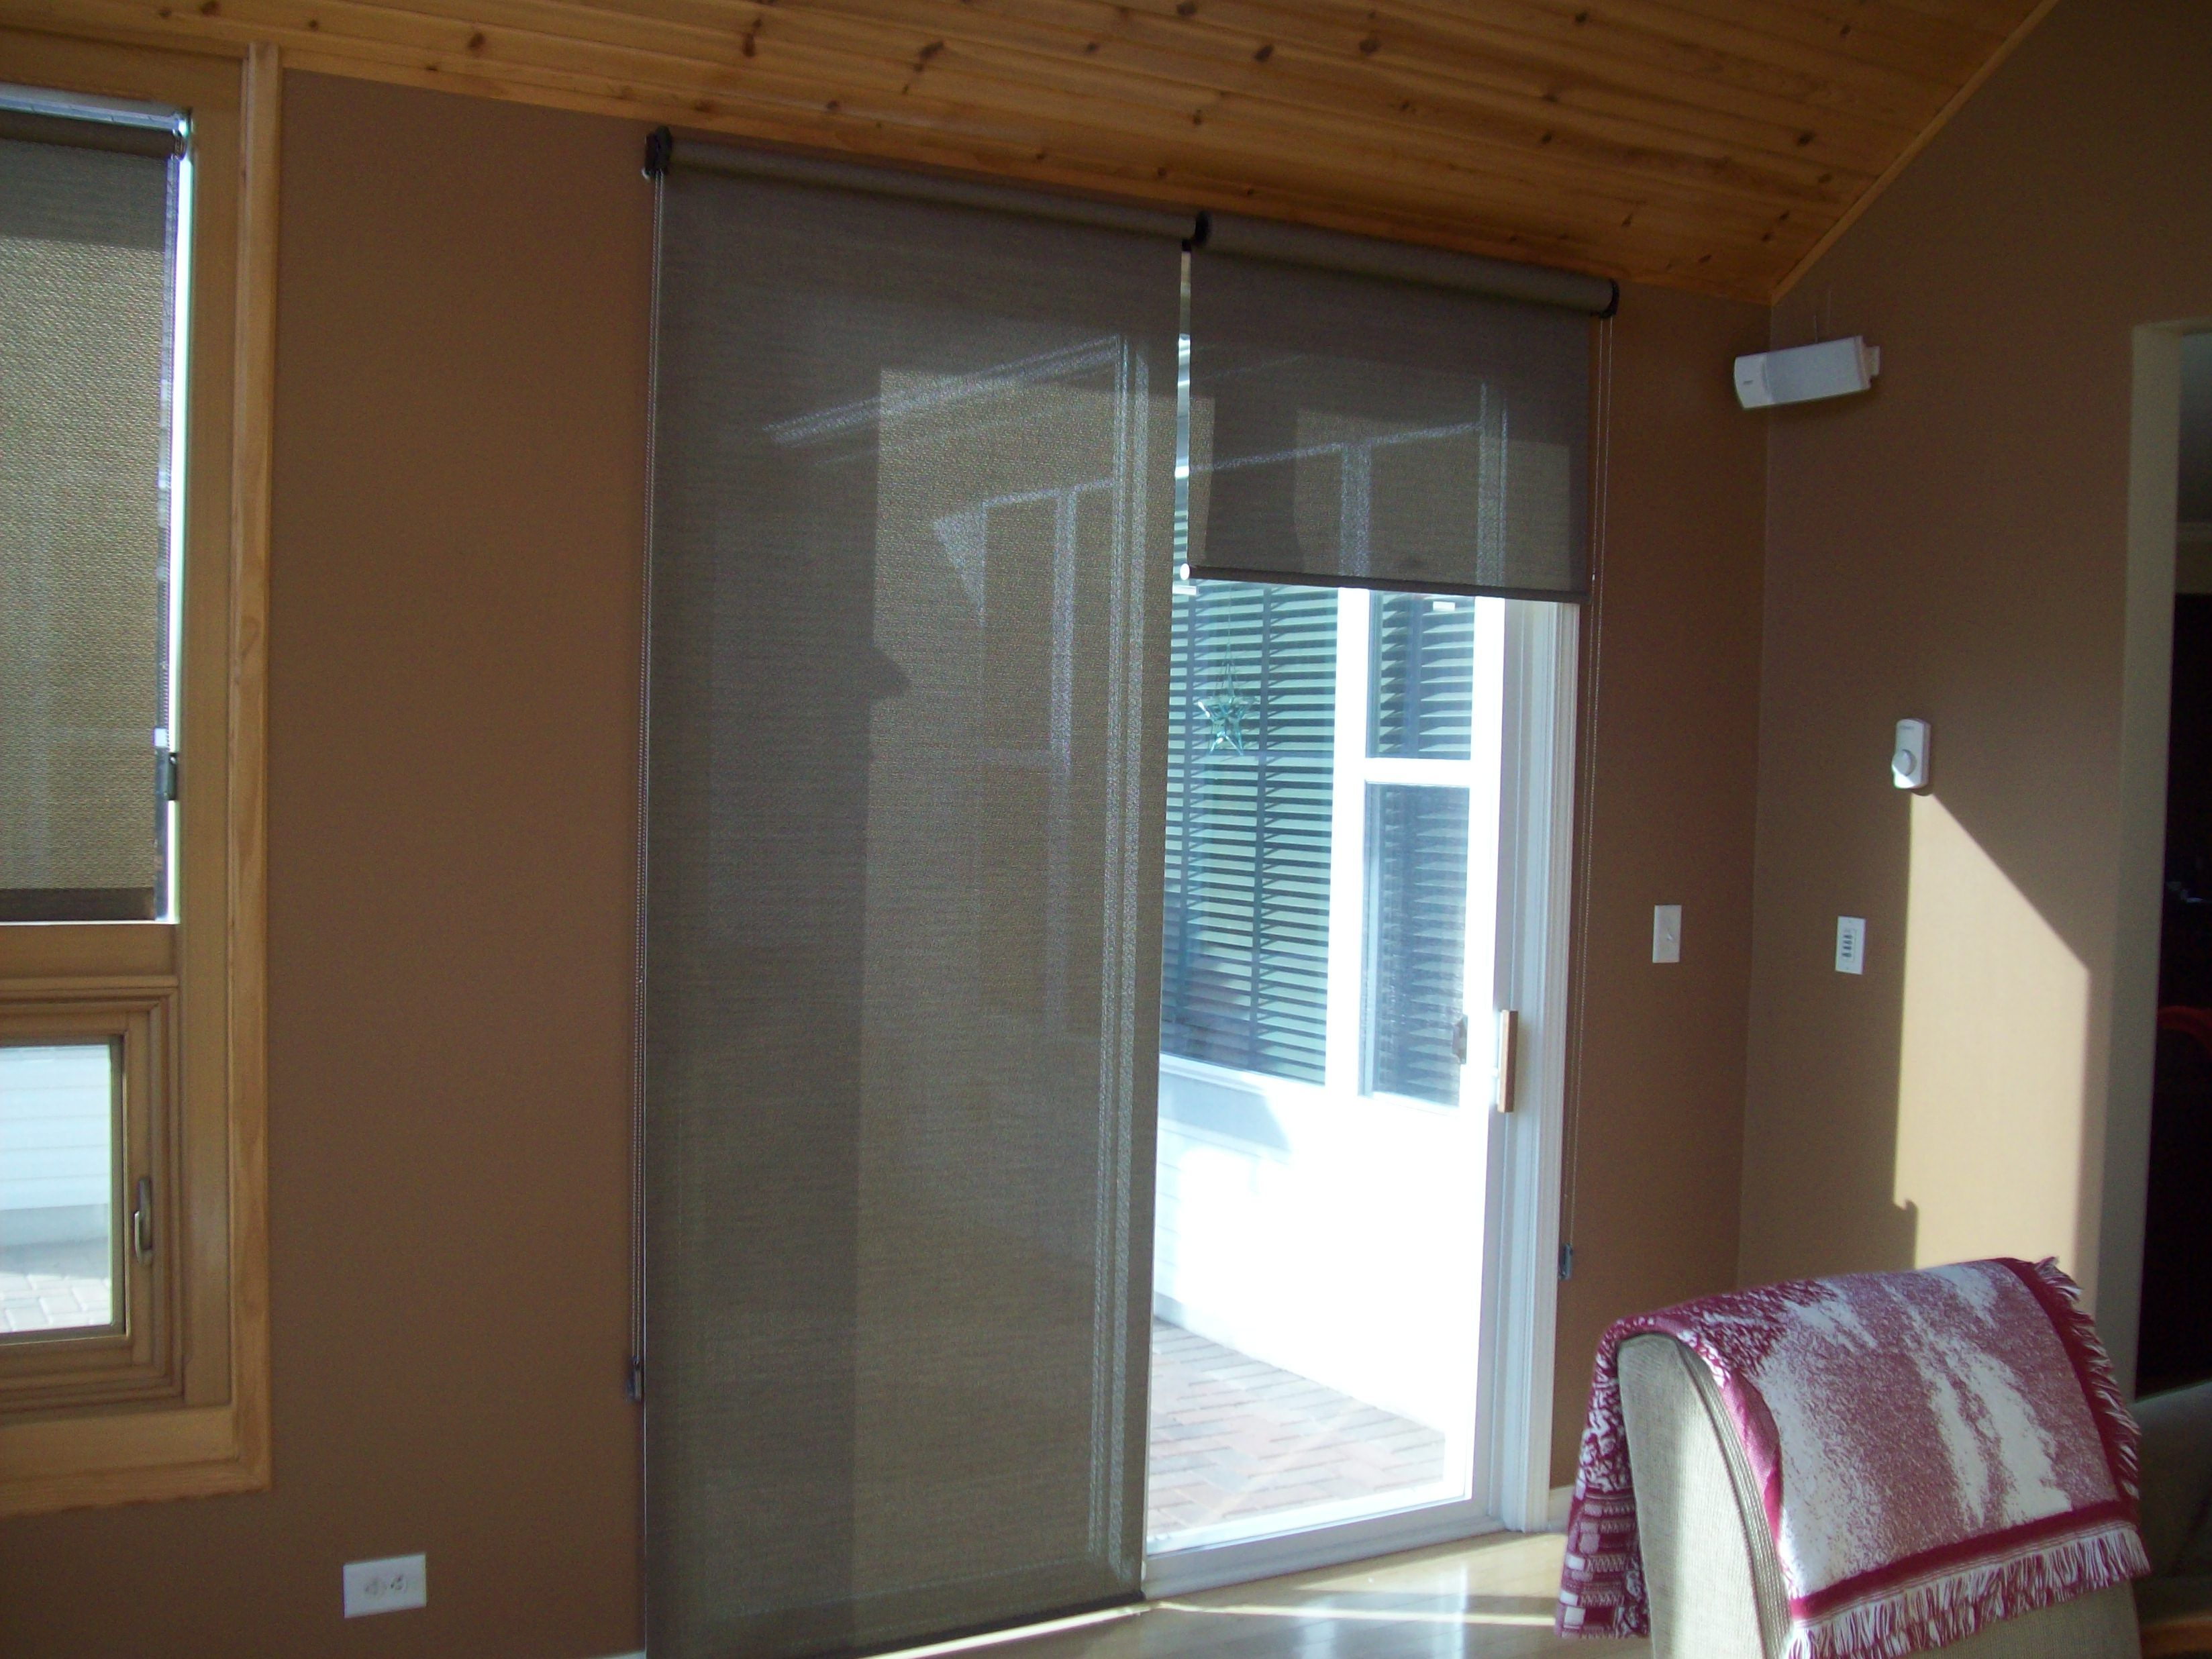 Roller Shades On Patio Door One 1 2 Up To Give Idea Of Light Control Patio Door Curtains Sliding Door Window Coverings Patio Doors